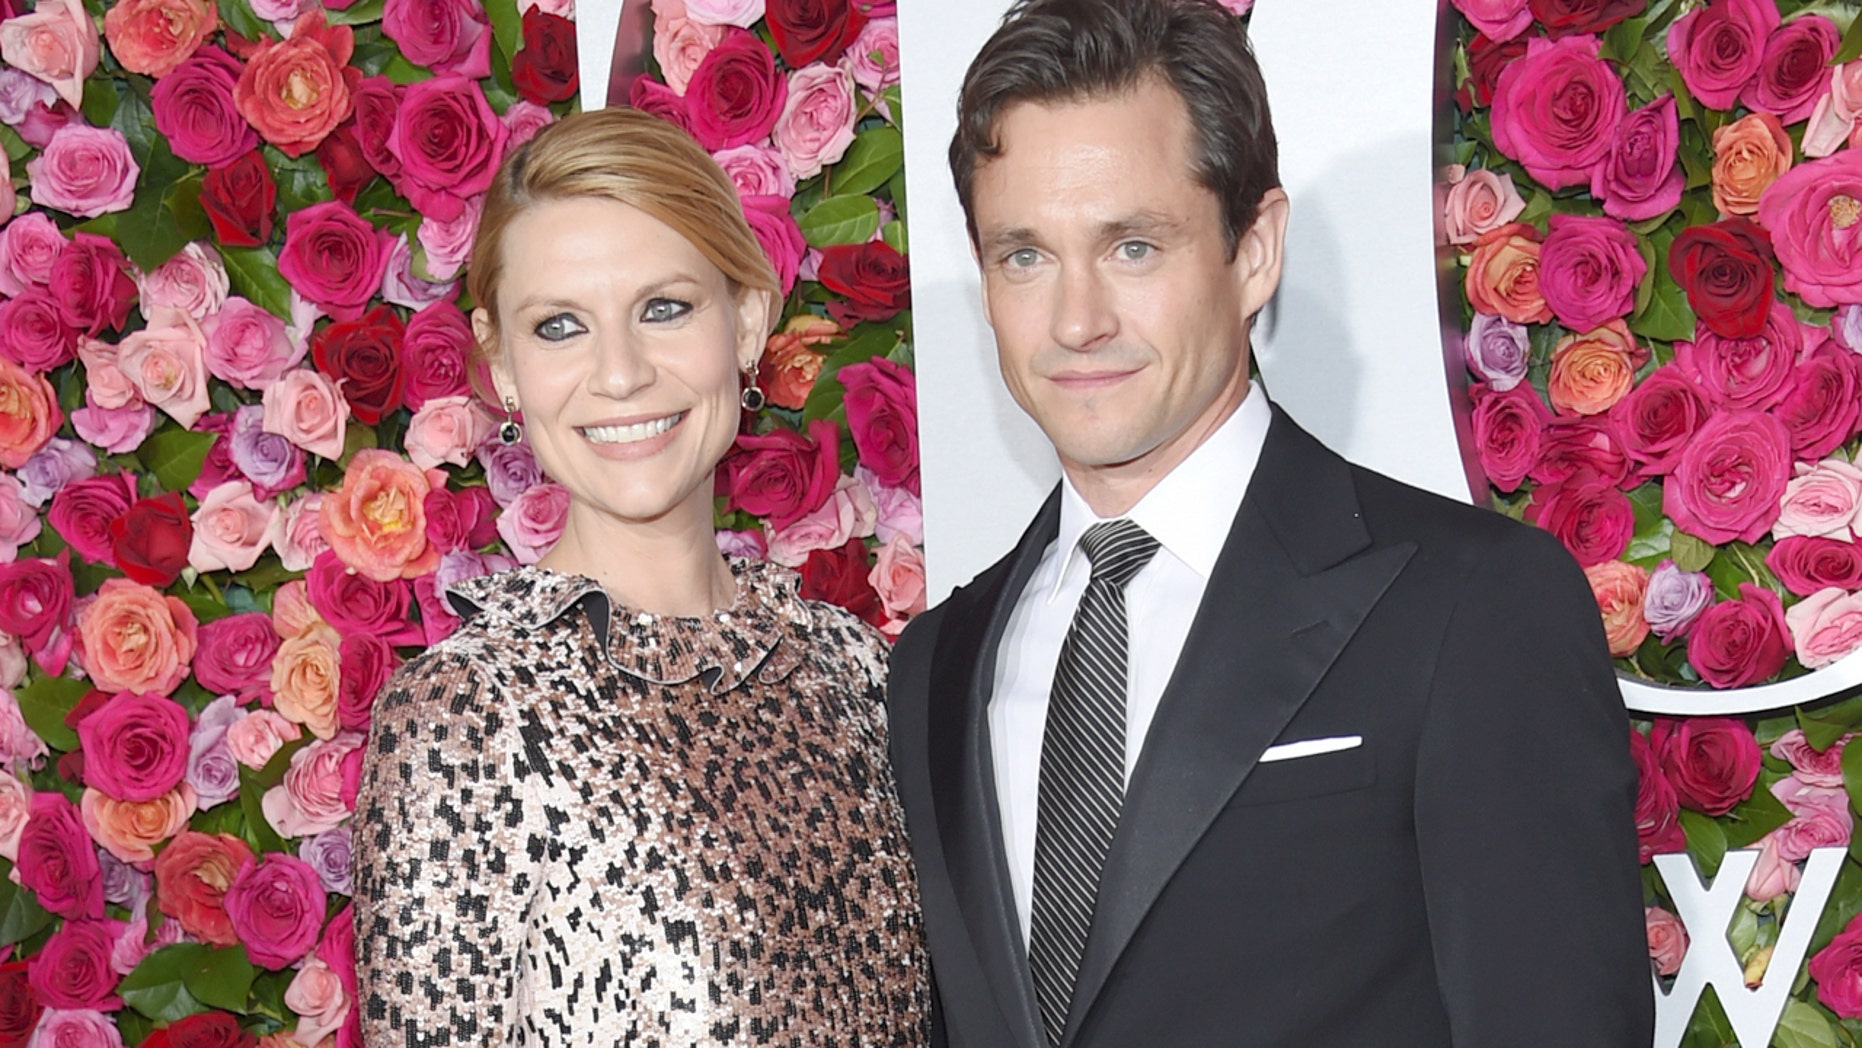 FILE - In this June 10, 2018 file photo, Claire Danes, left, and Hugh Dancy arrive at the 72nd annual Tony Awards in New York. A publicist for the actors said Friday, Aug. 31, that the couple gave birth Monday in New York. (Photo by Evan Agostini/Invision/AP, File)